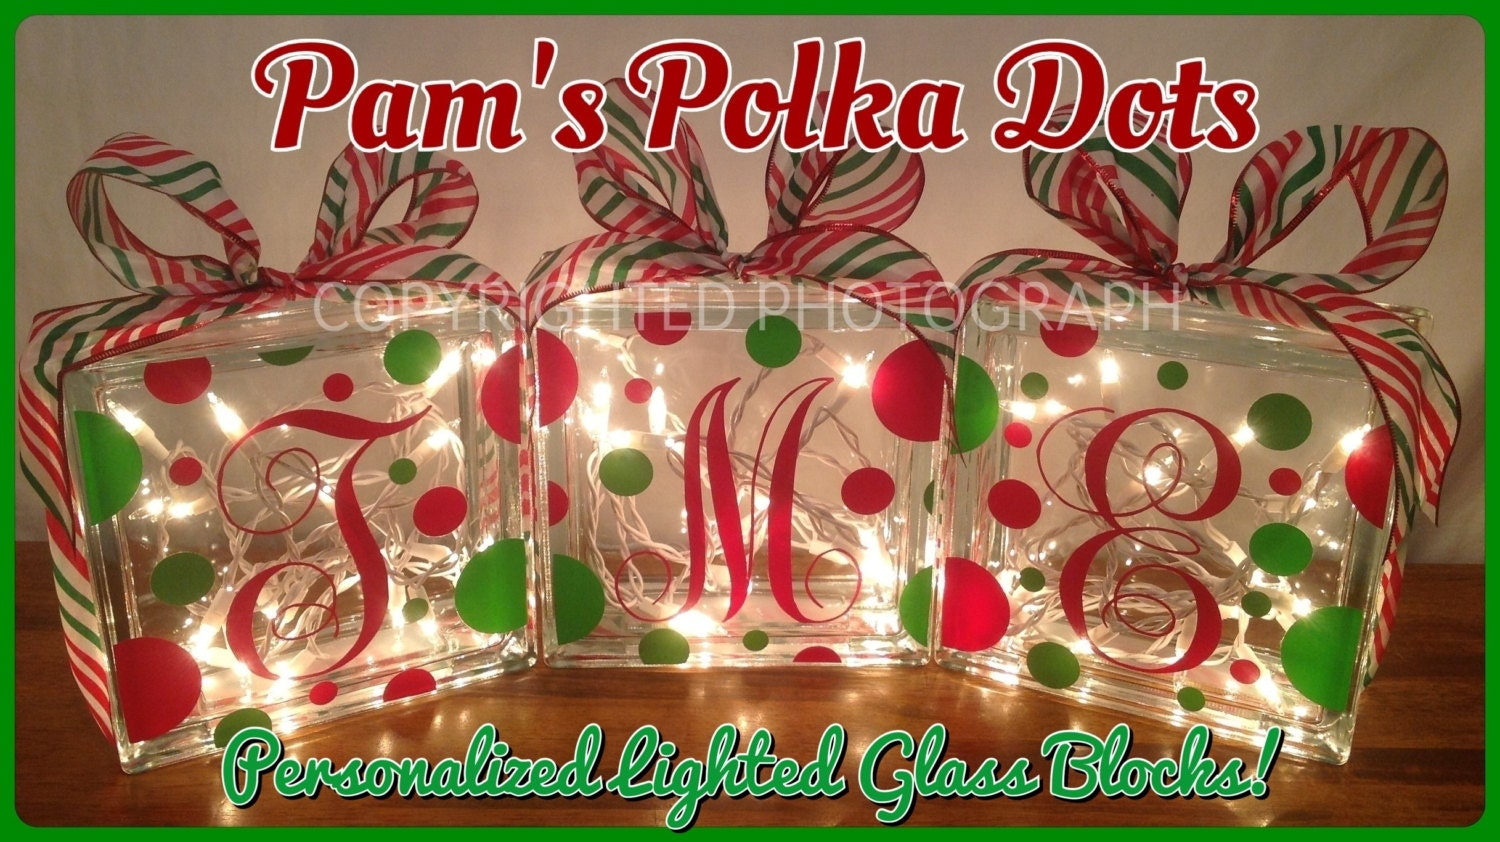 personalized lighted christmas glass block with monogram initial white lights polka dots ribbon holiday decor mantel foyer entryway